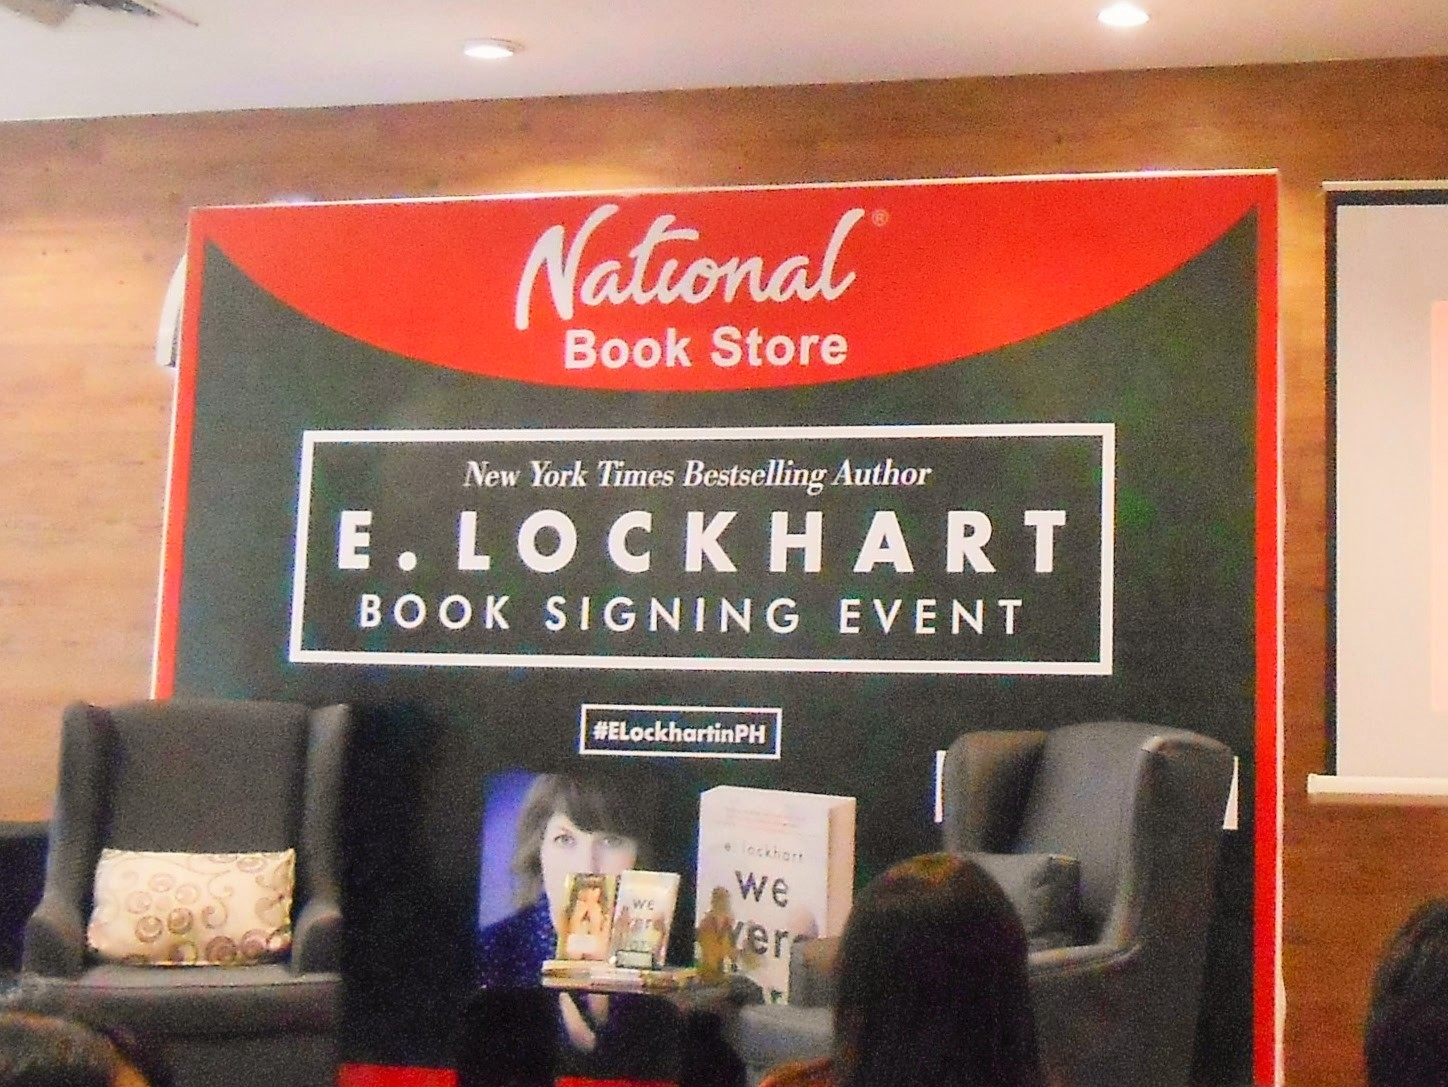 national bookstore 6 job openings in national book store at kalibrr, the easiest & most convenient way to look for a job create your free profile today.